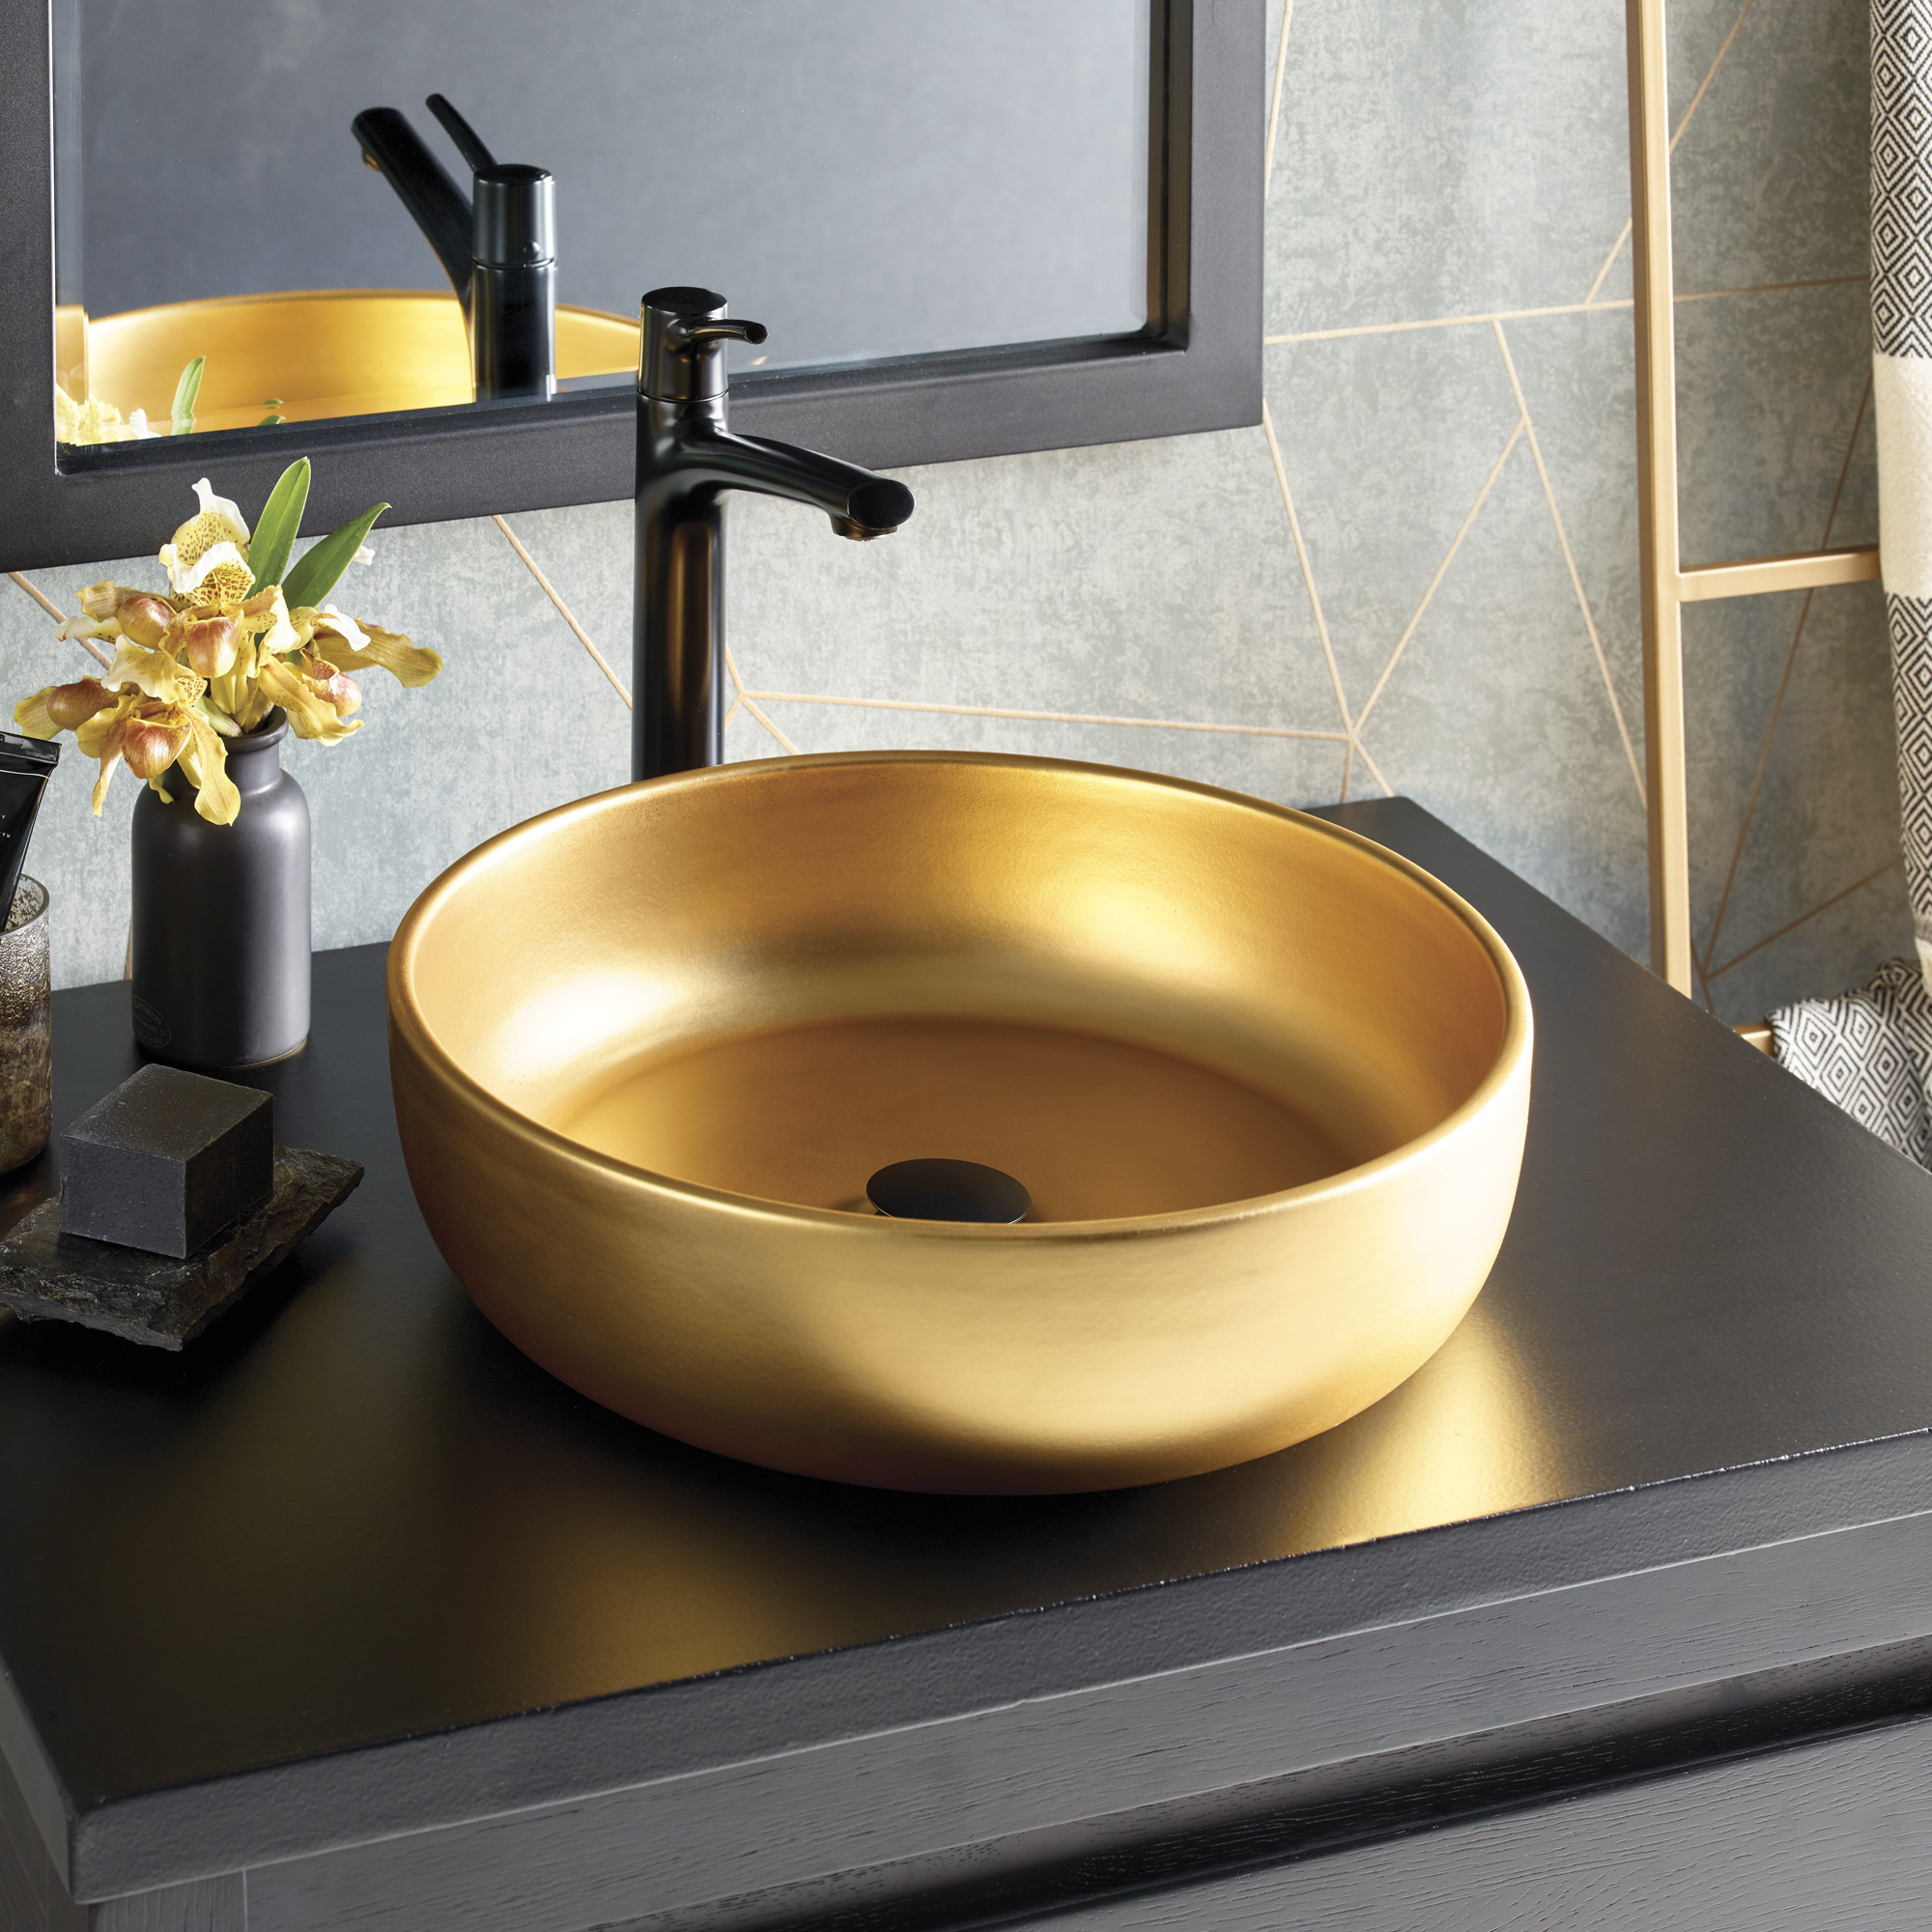 24k gold sink by Native Trails Precious Metals Collections with black matte bathroom faucet